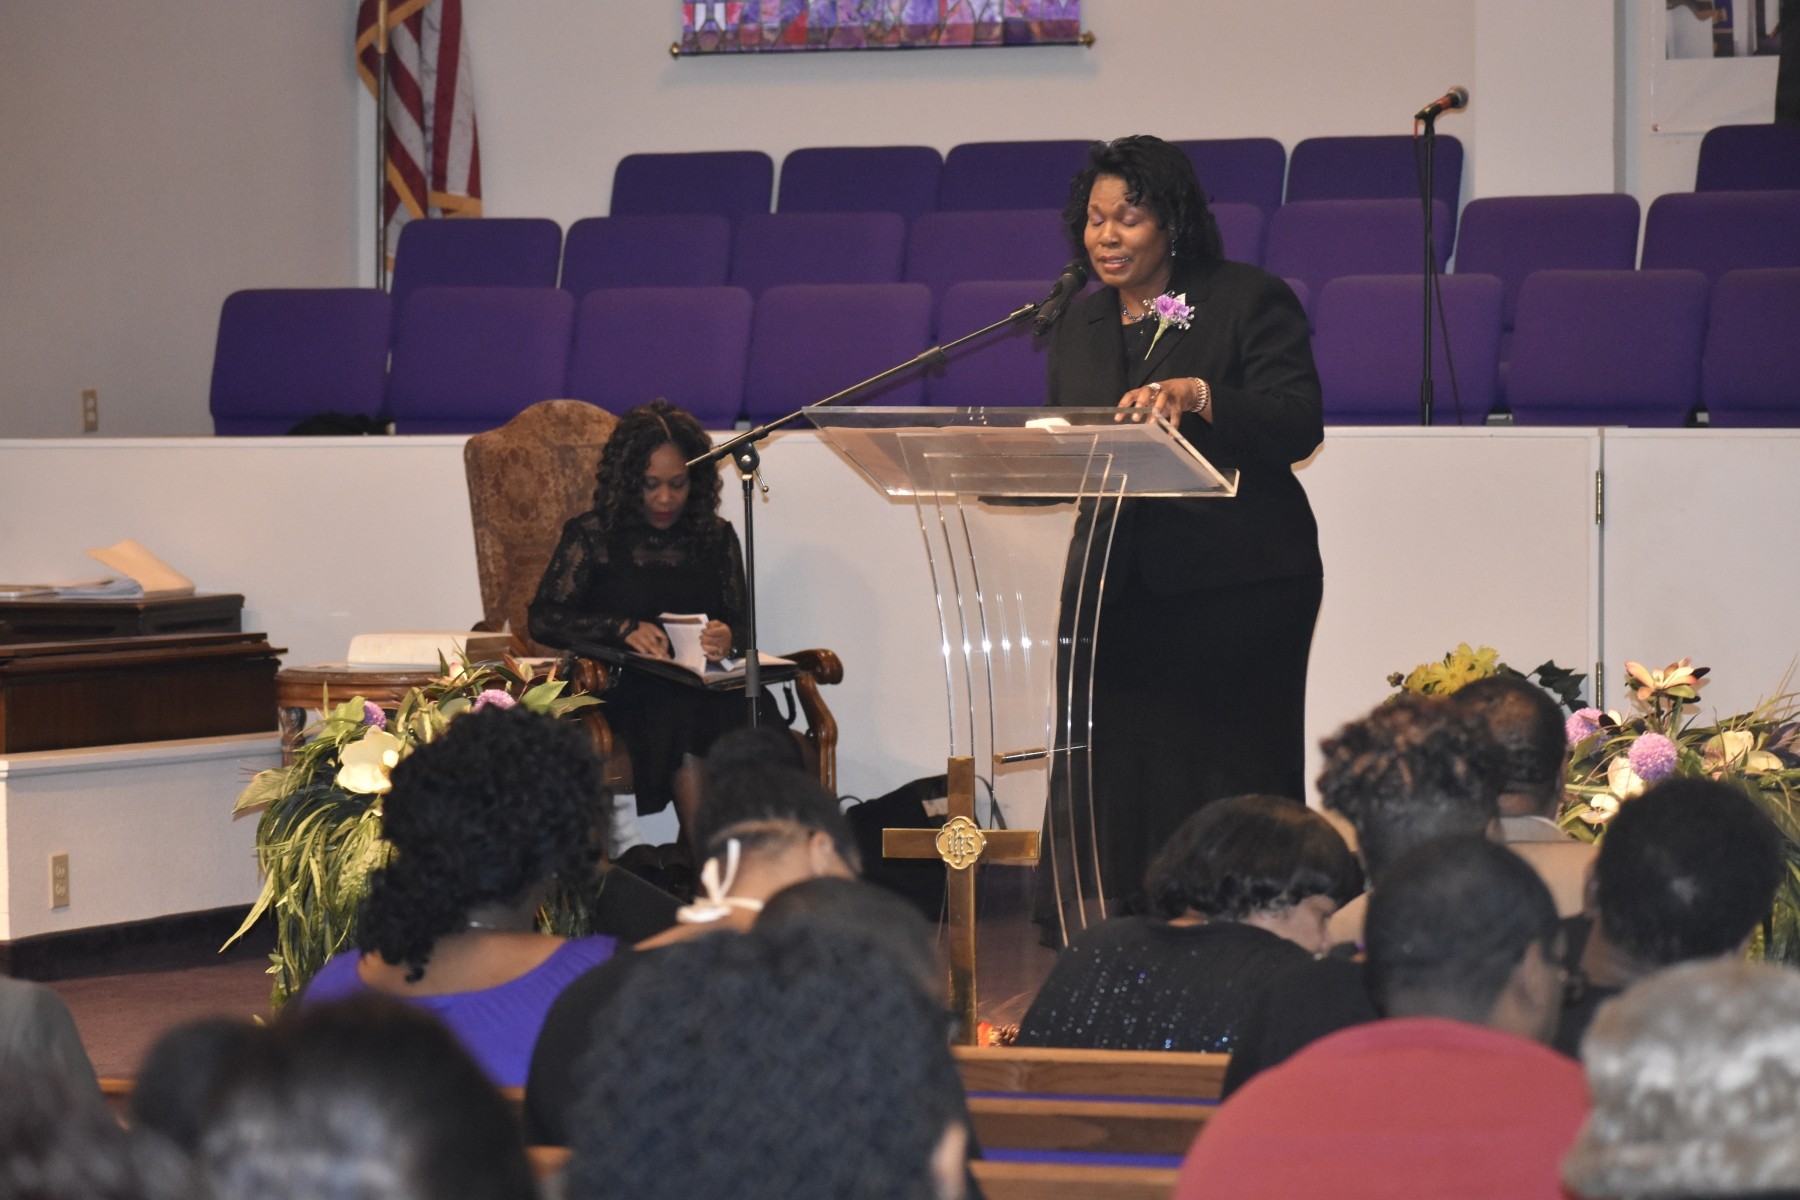 Rev. Shelia Williams